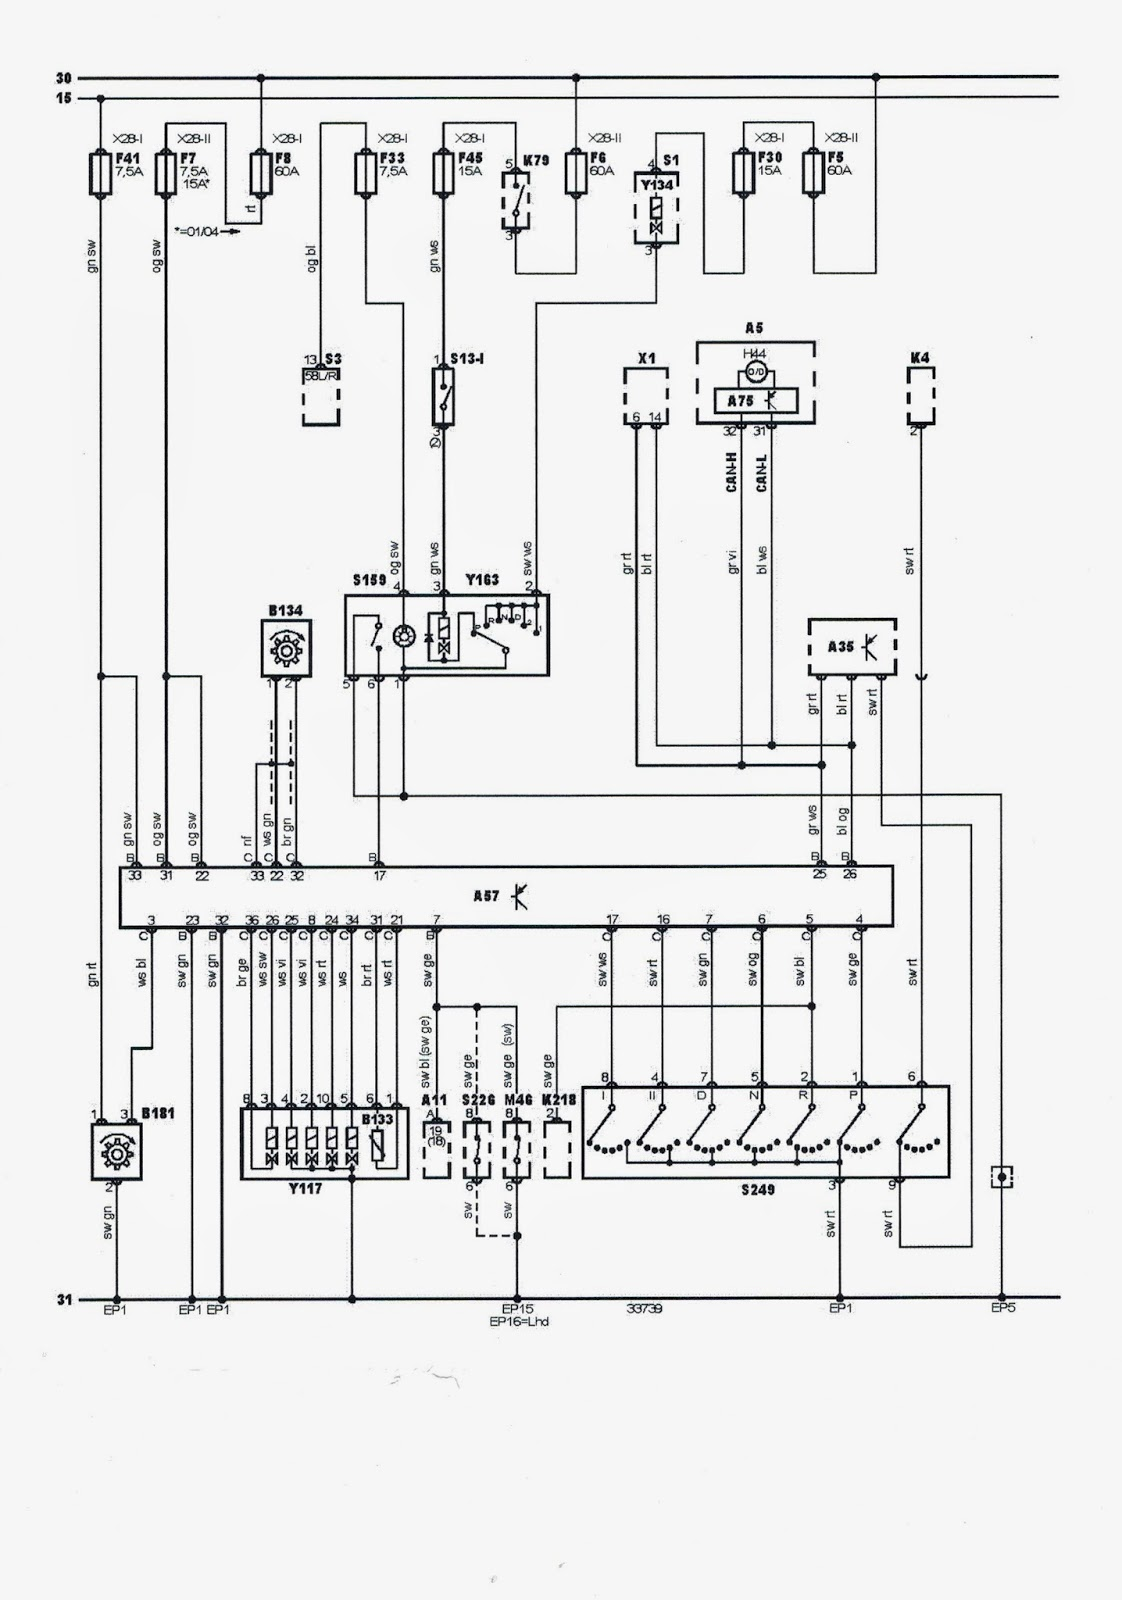 diagrama caja de fusibles  diagram  auto wiring diagram